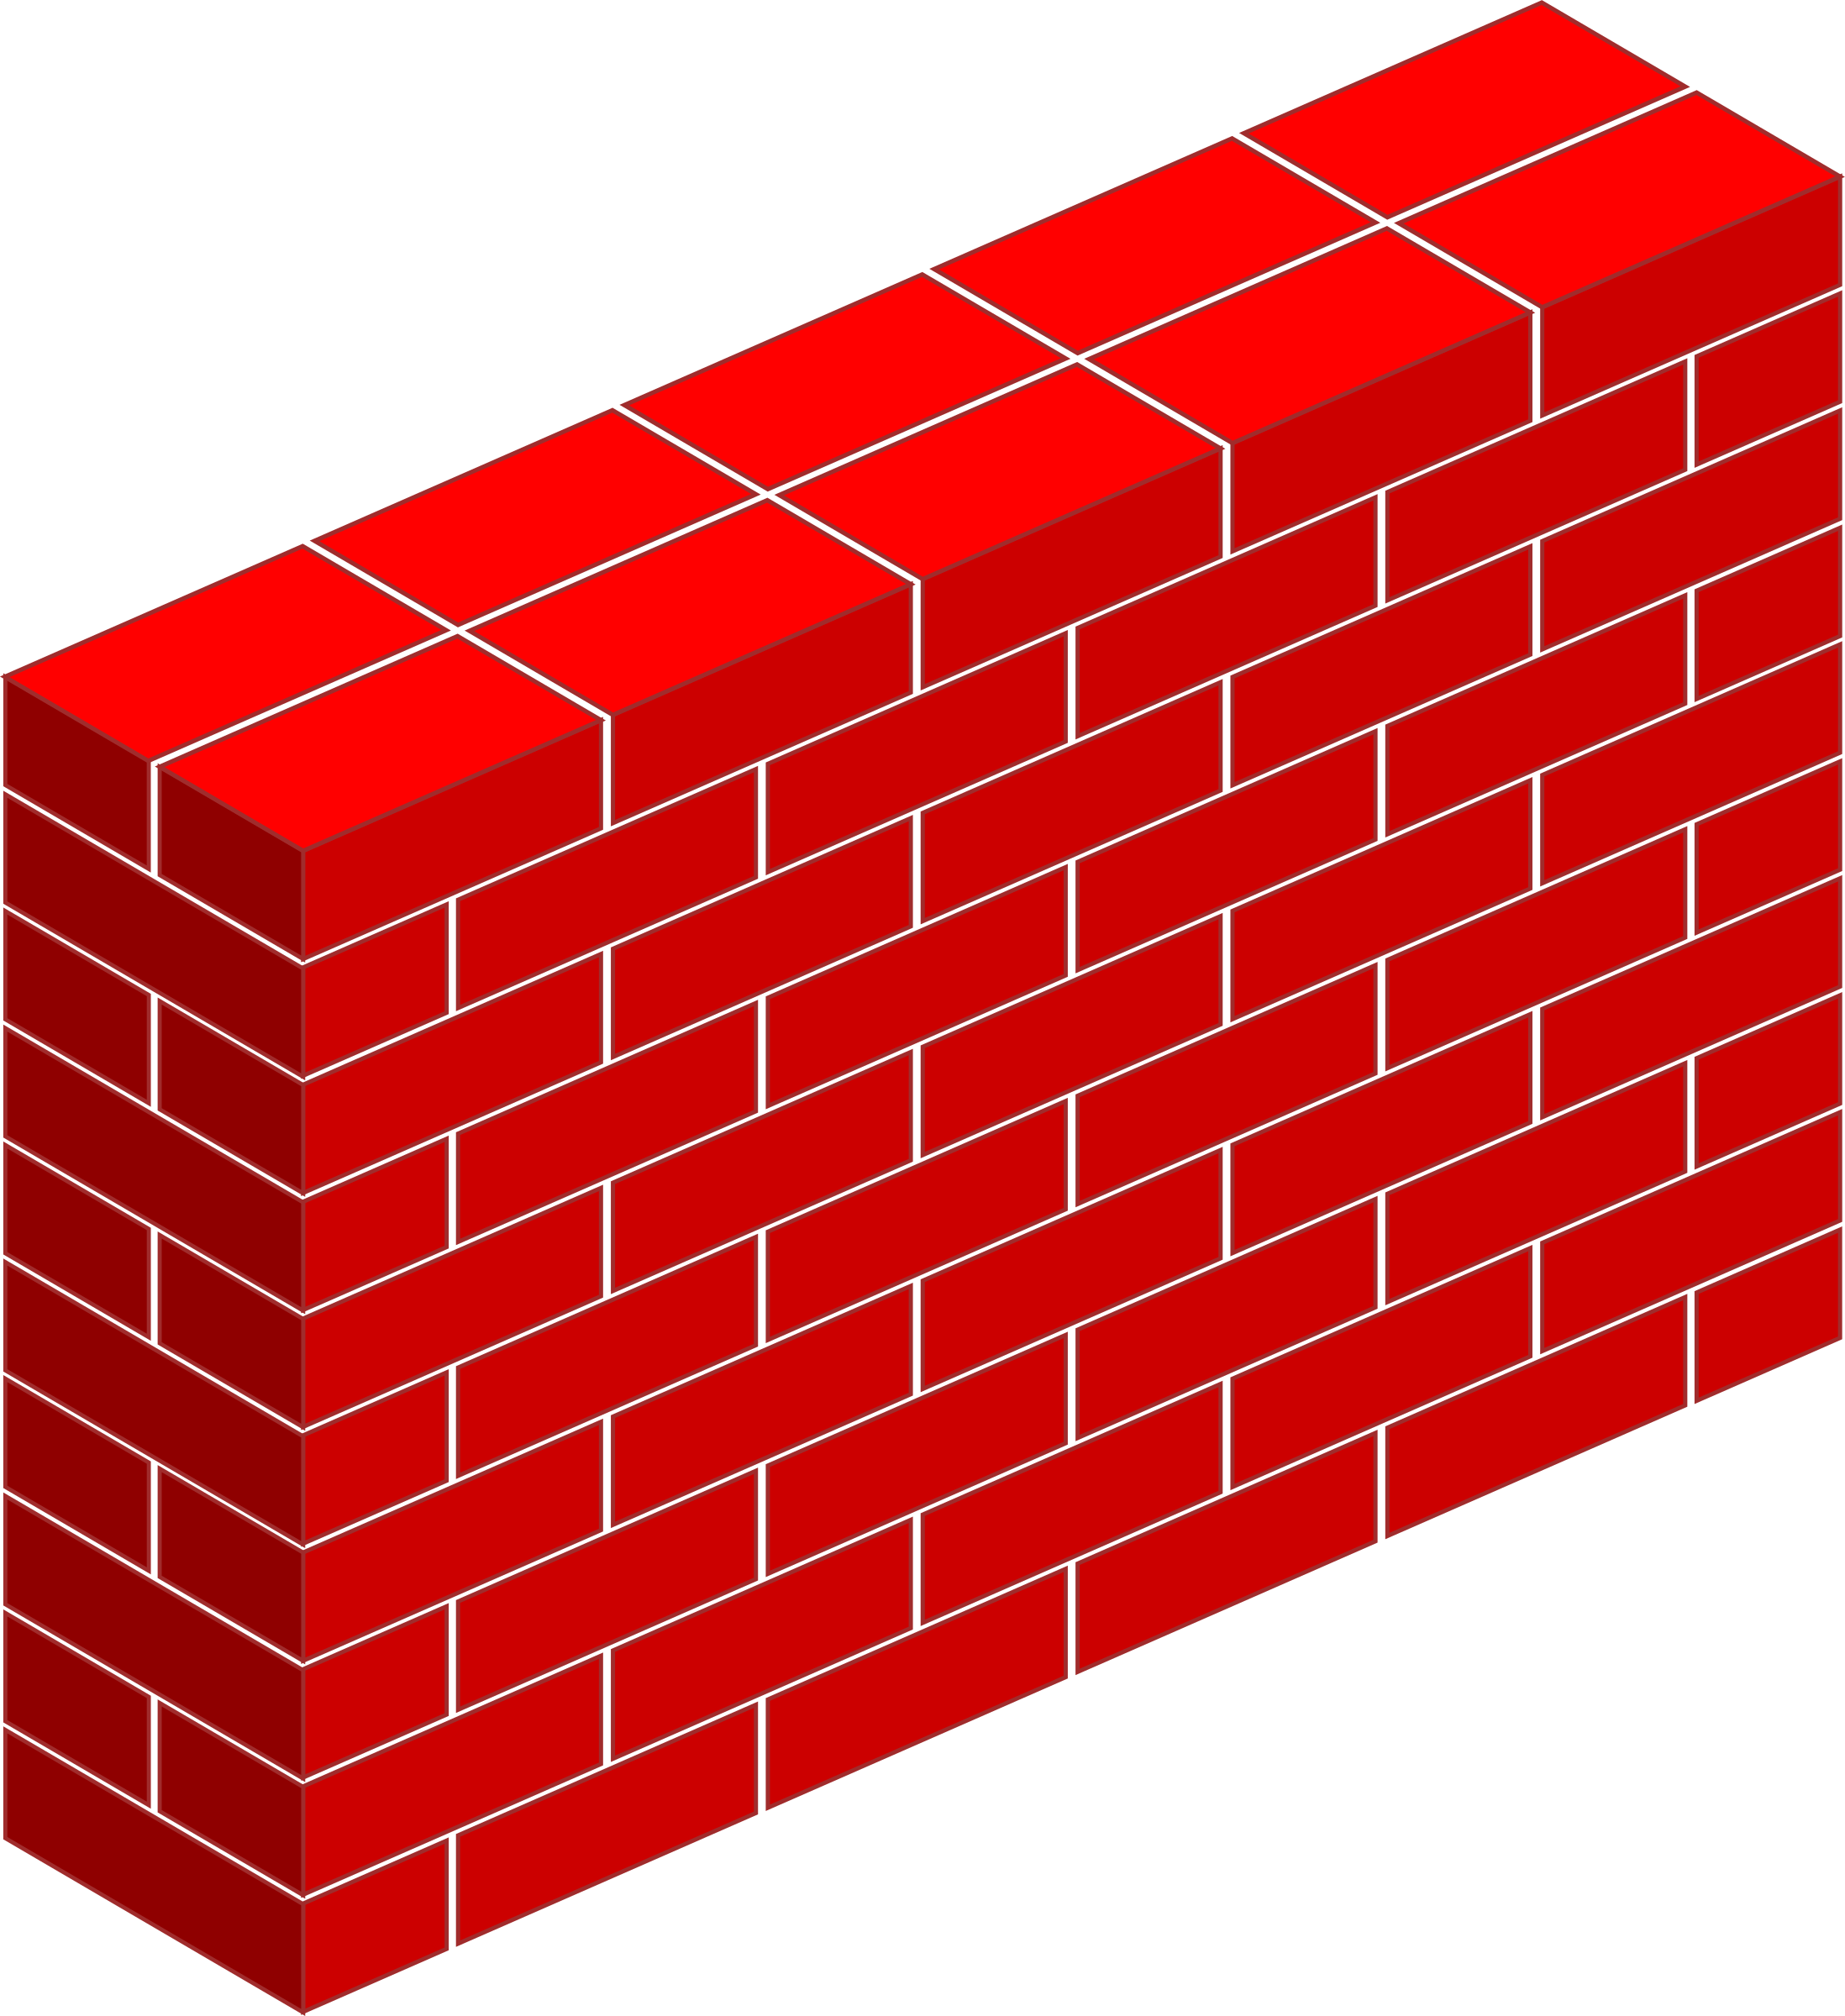 Wall clipart public domain svg royalty free download Red Brick Wall Vector Clipart image - Free stock photo - Public ... svg royalty free download